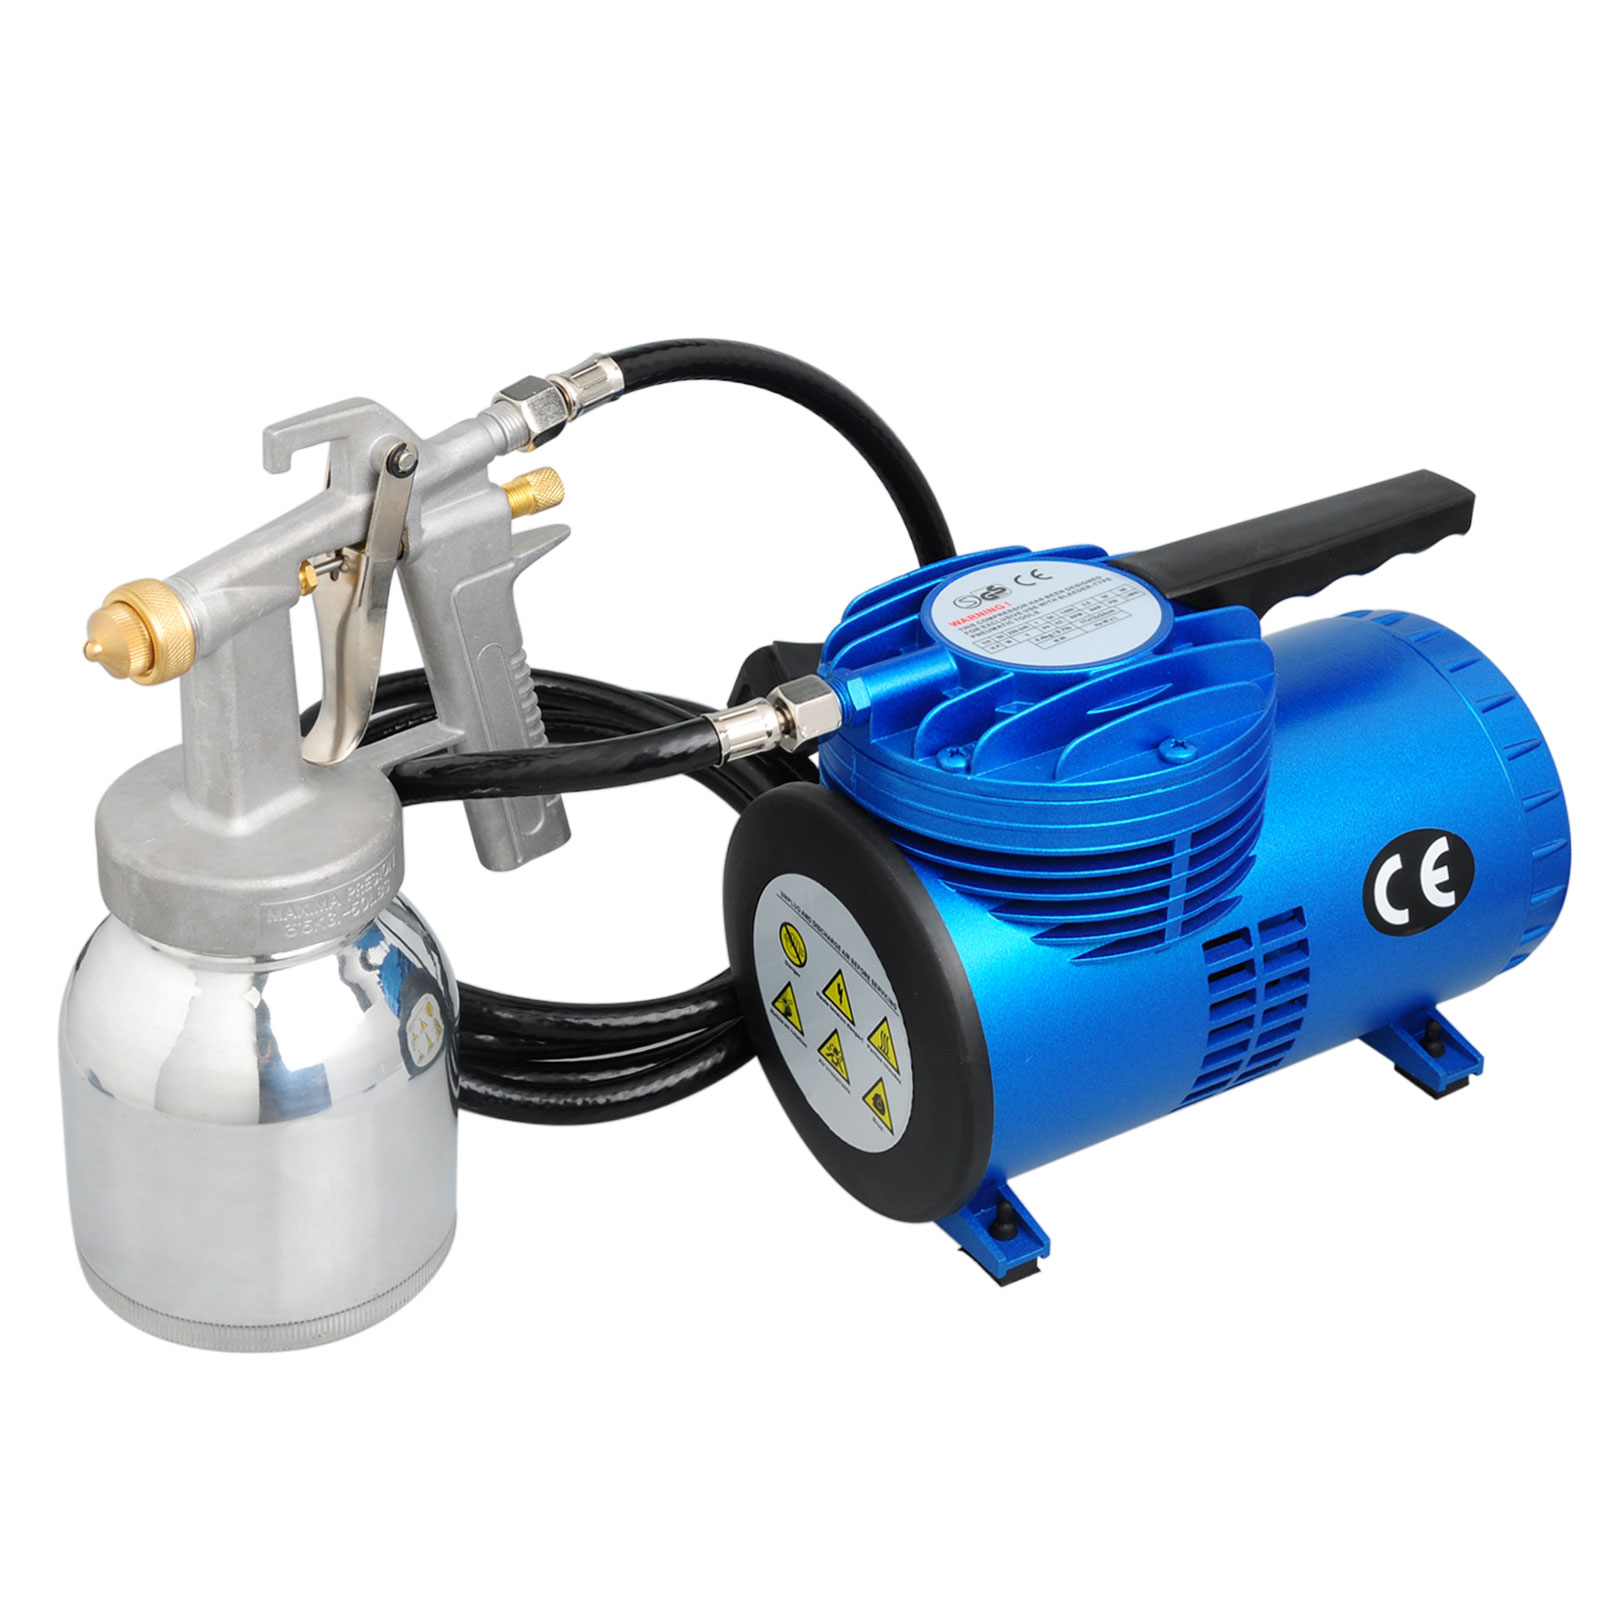 Superb Spray Painting With A Compressor Part - 5: Item Specifics